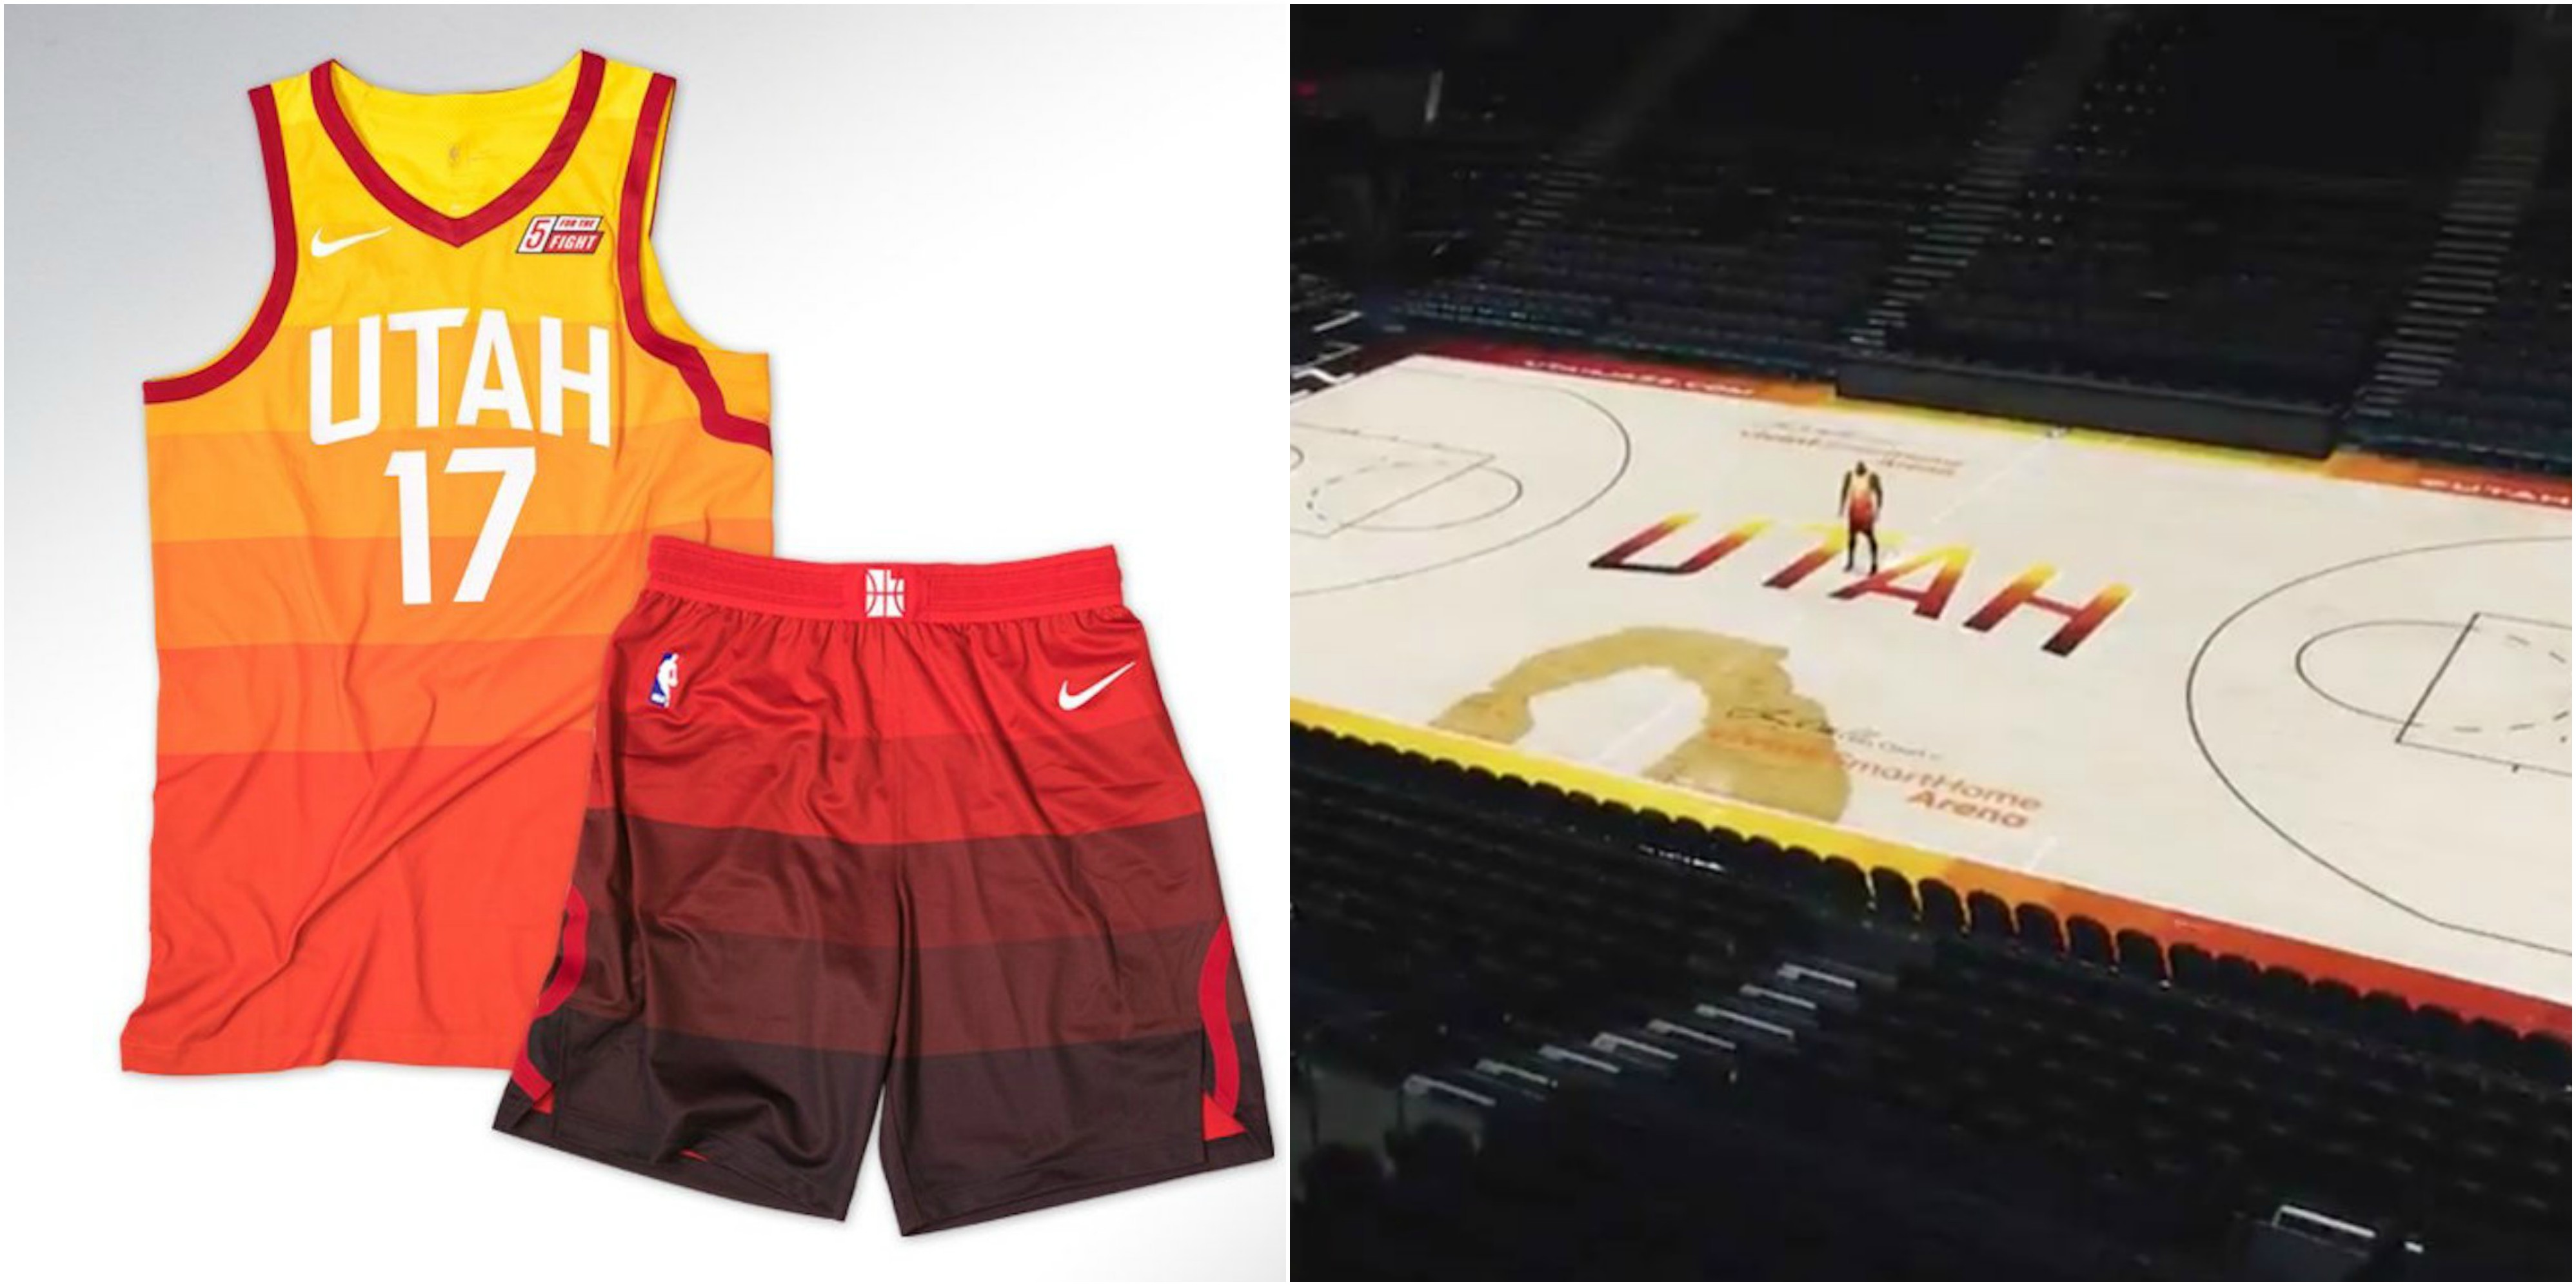 separation shoes 44f1b 1c8fc Utah Jazz Unveil New 'City' Uniforms And Court (PICS ...